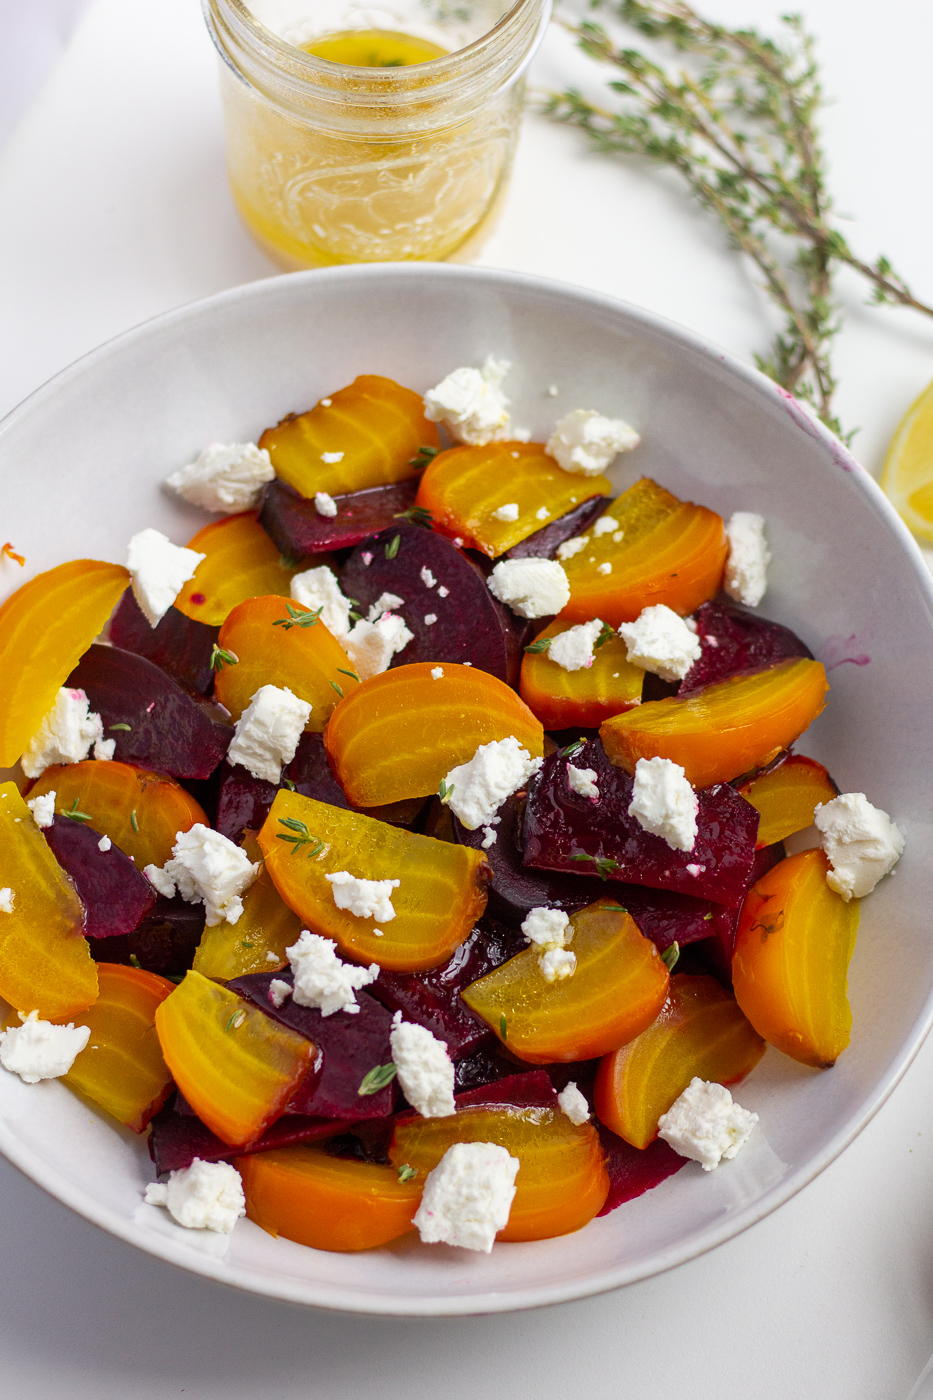 Roasted Beet and Goat Cheese Salad with Honey Lemon Dressing